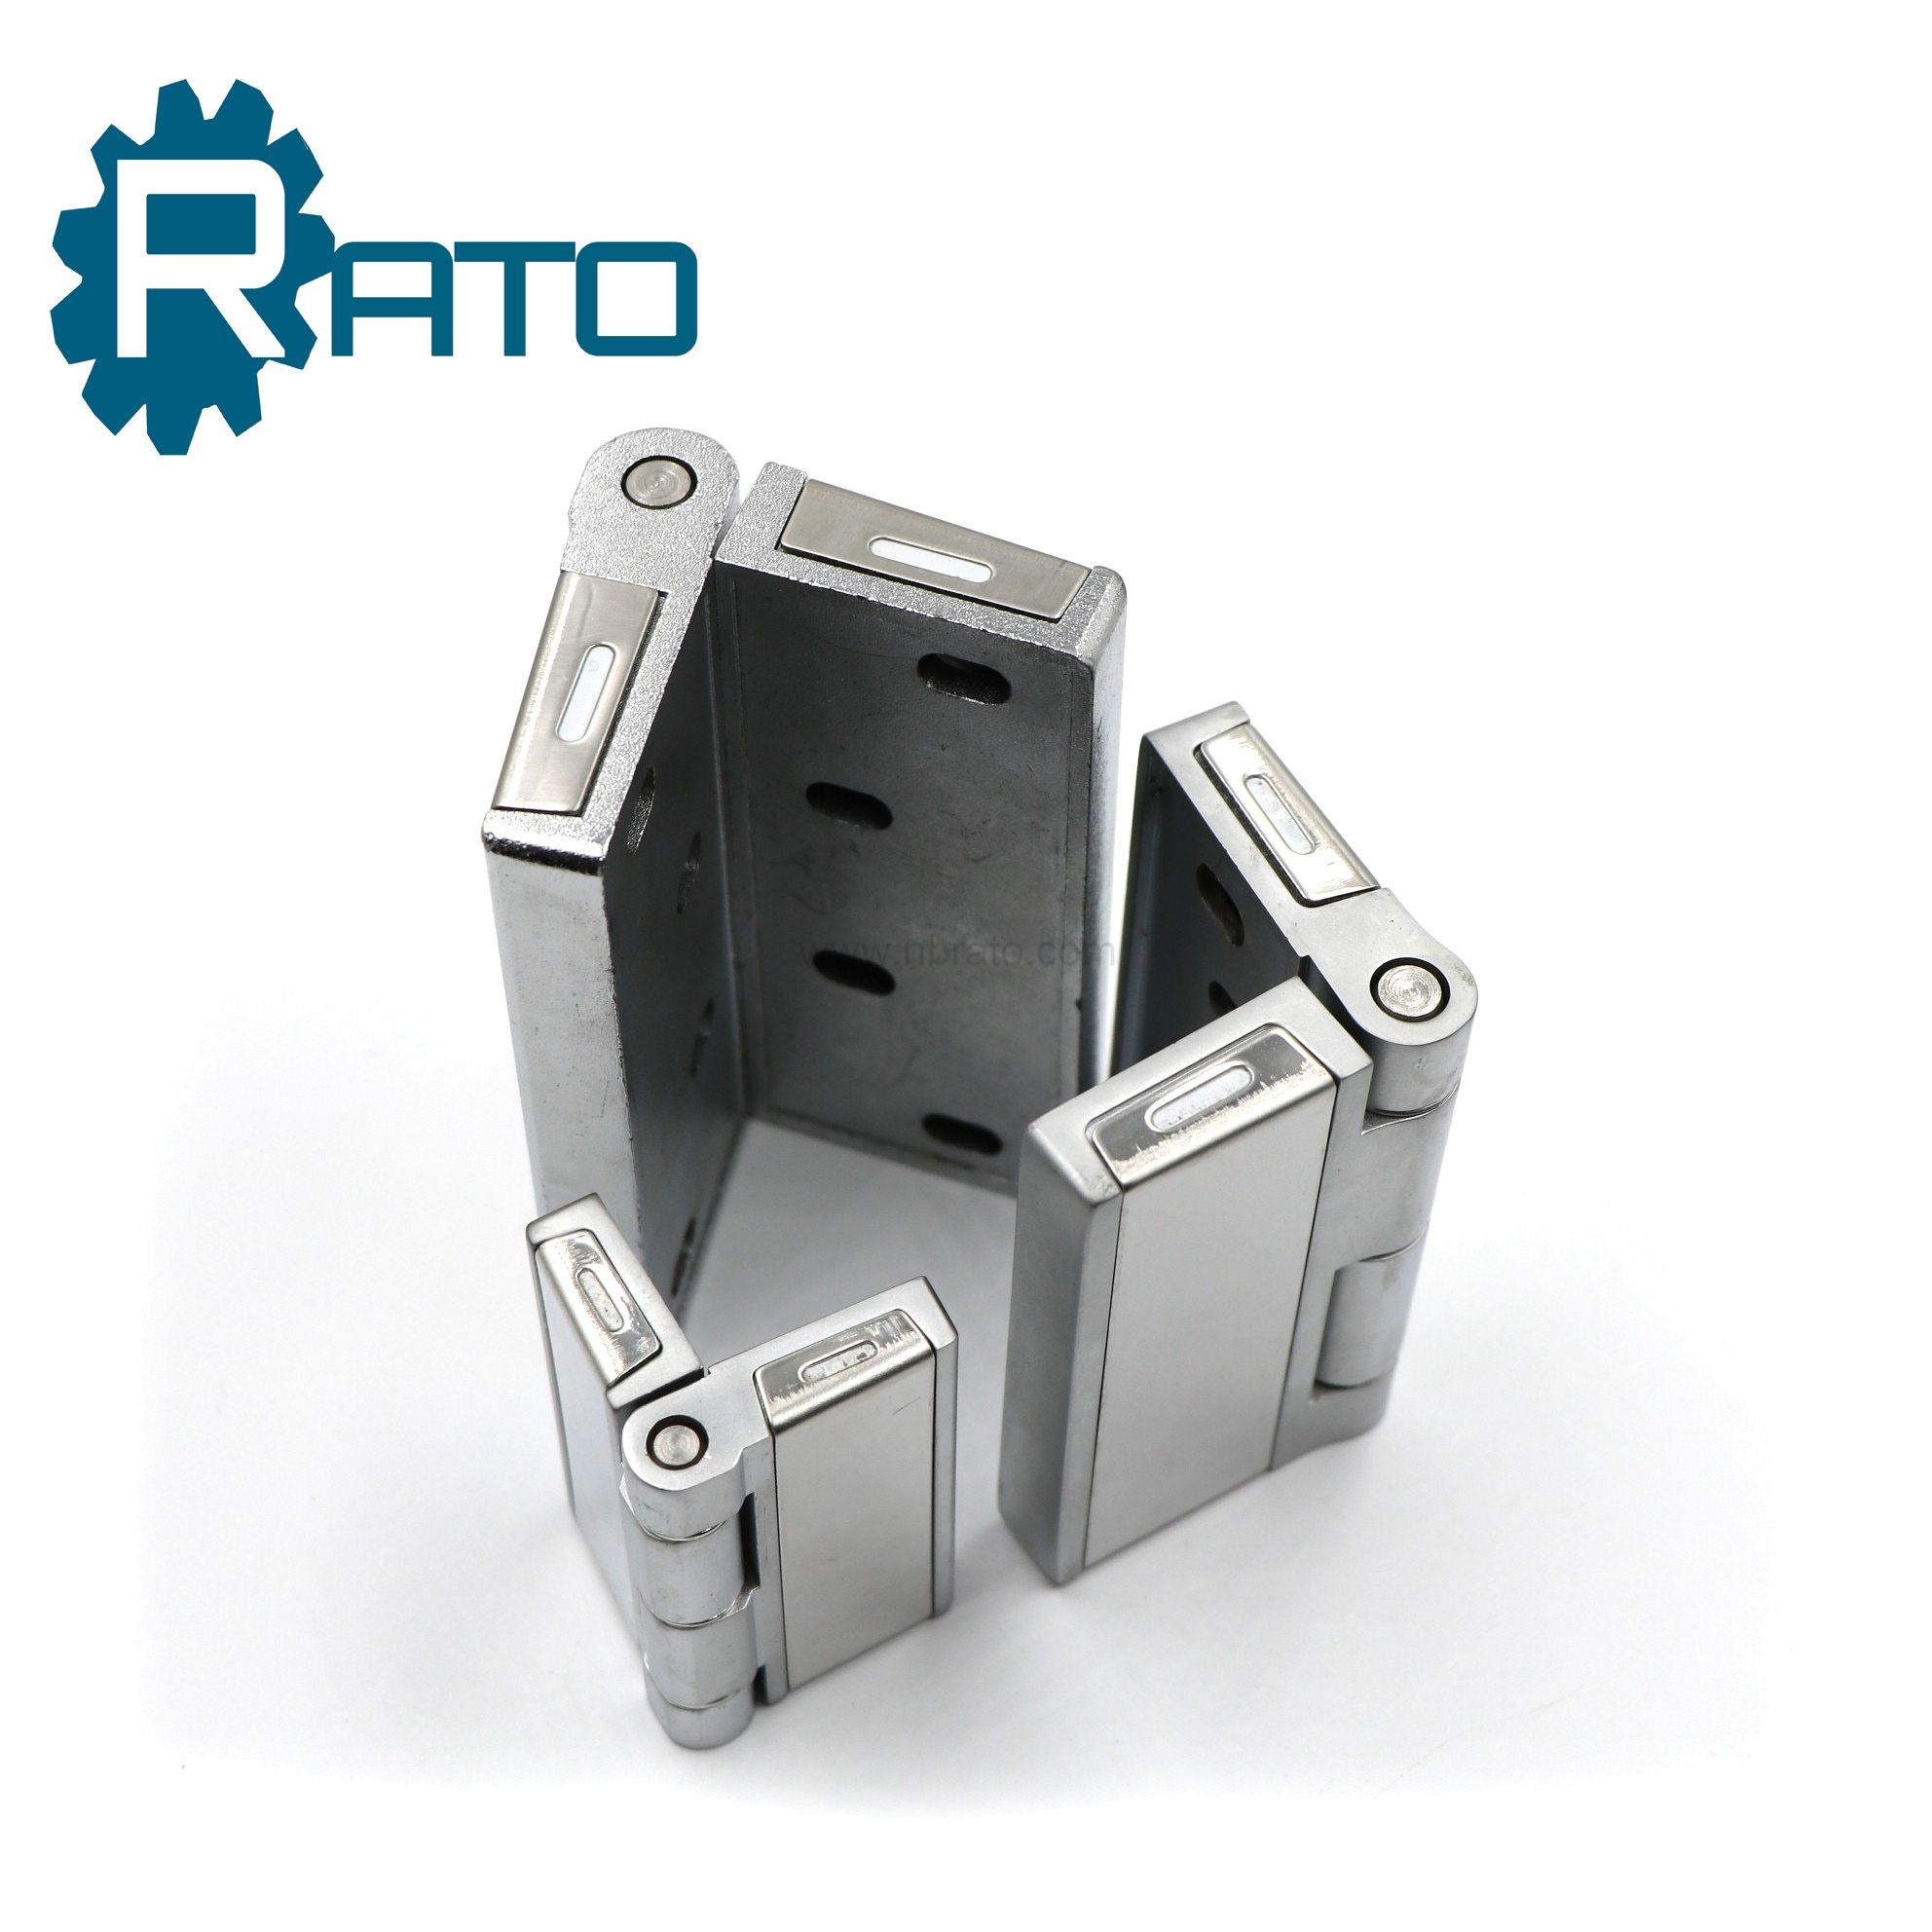 Stainless steel cover equipment box electrical box industrial hinge